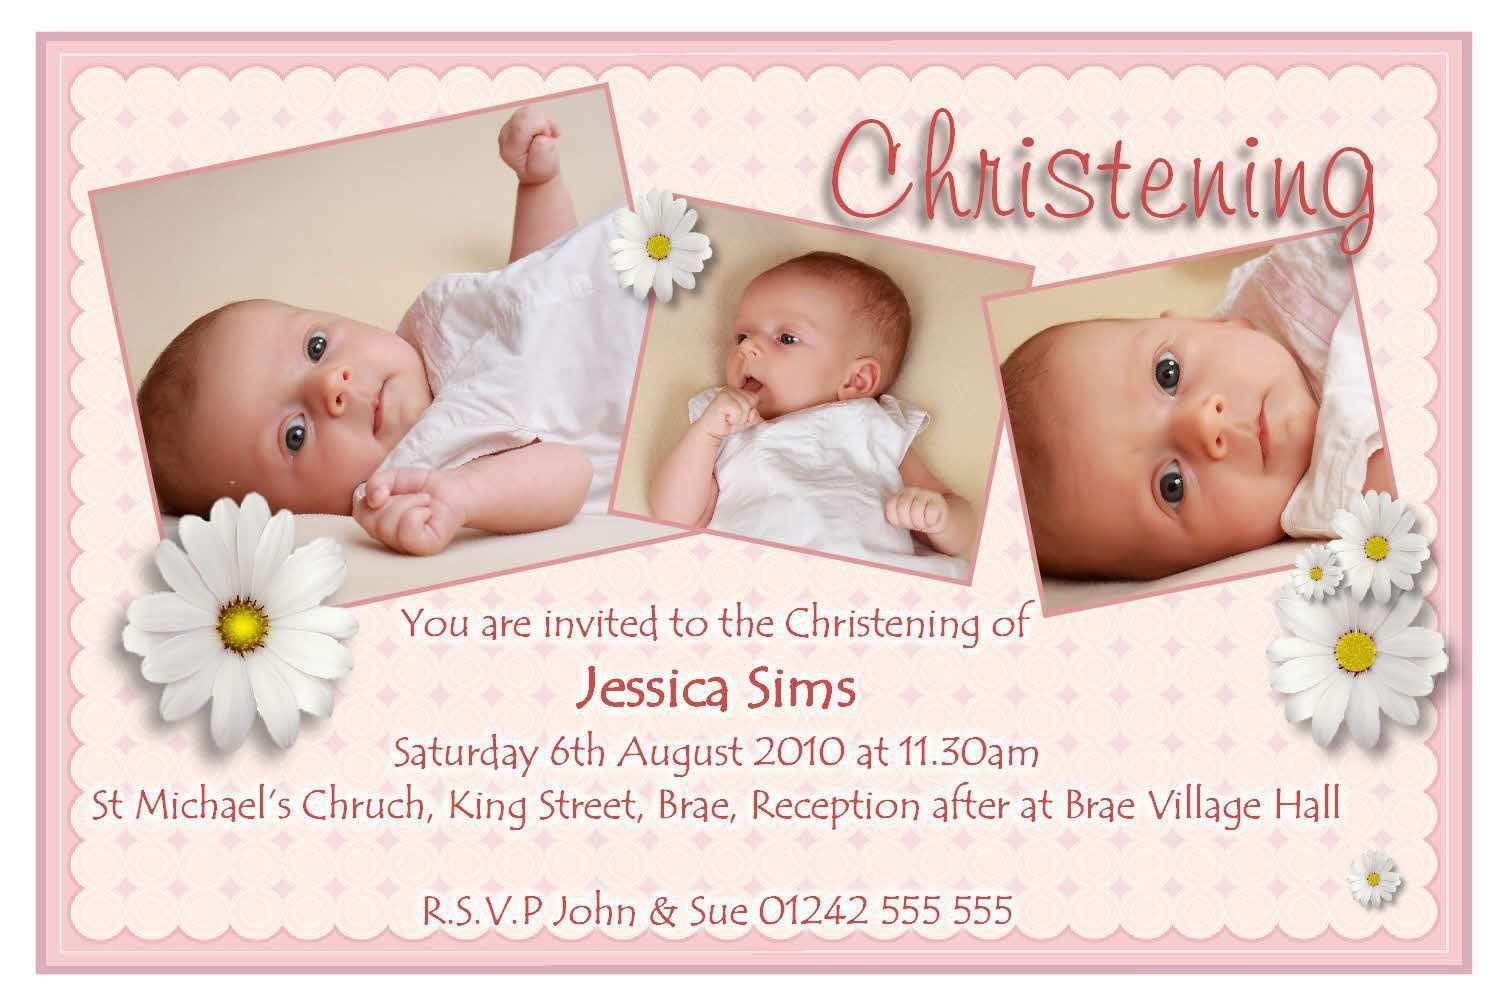 27 How To Create Christening Invitation For Baby Girl Blank Template Maker by Christening Invitation For Baby Girl Blank Template